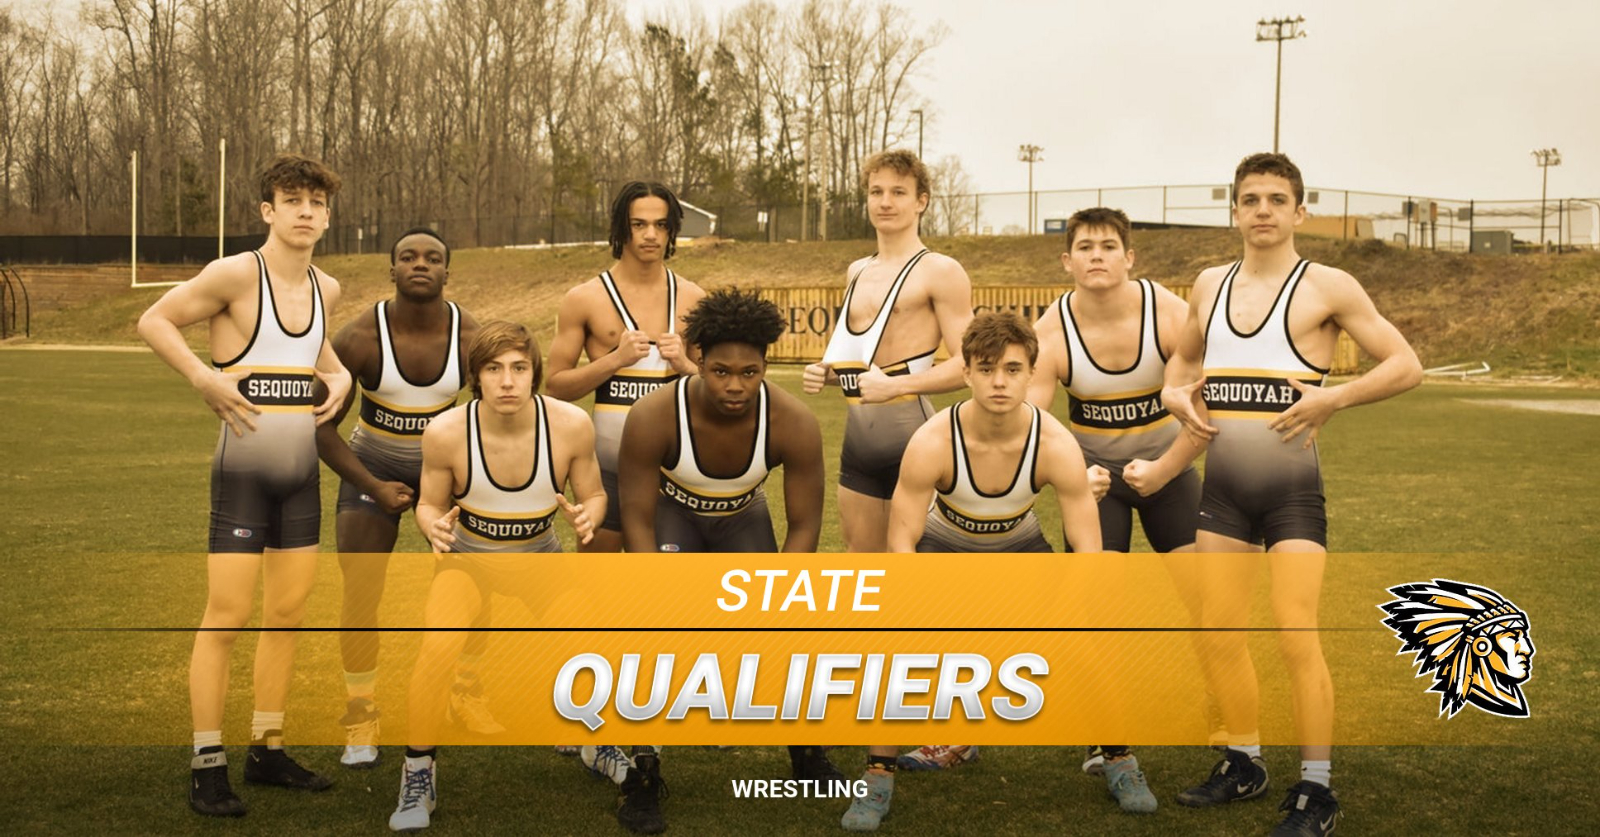 Wrestling State Qualifiers